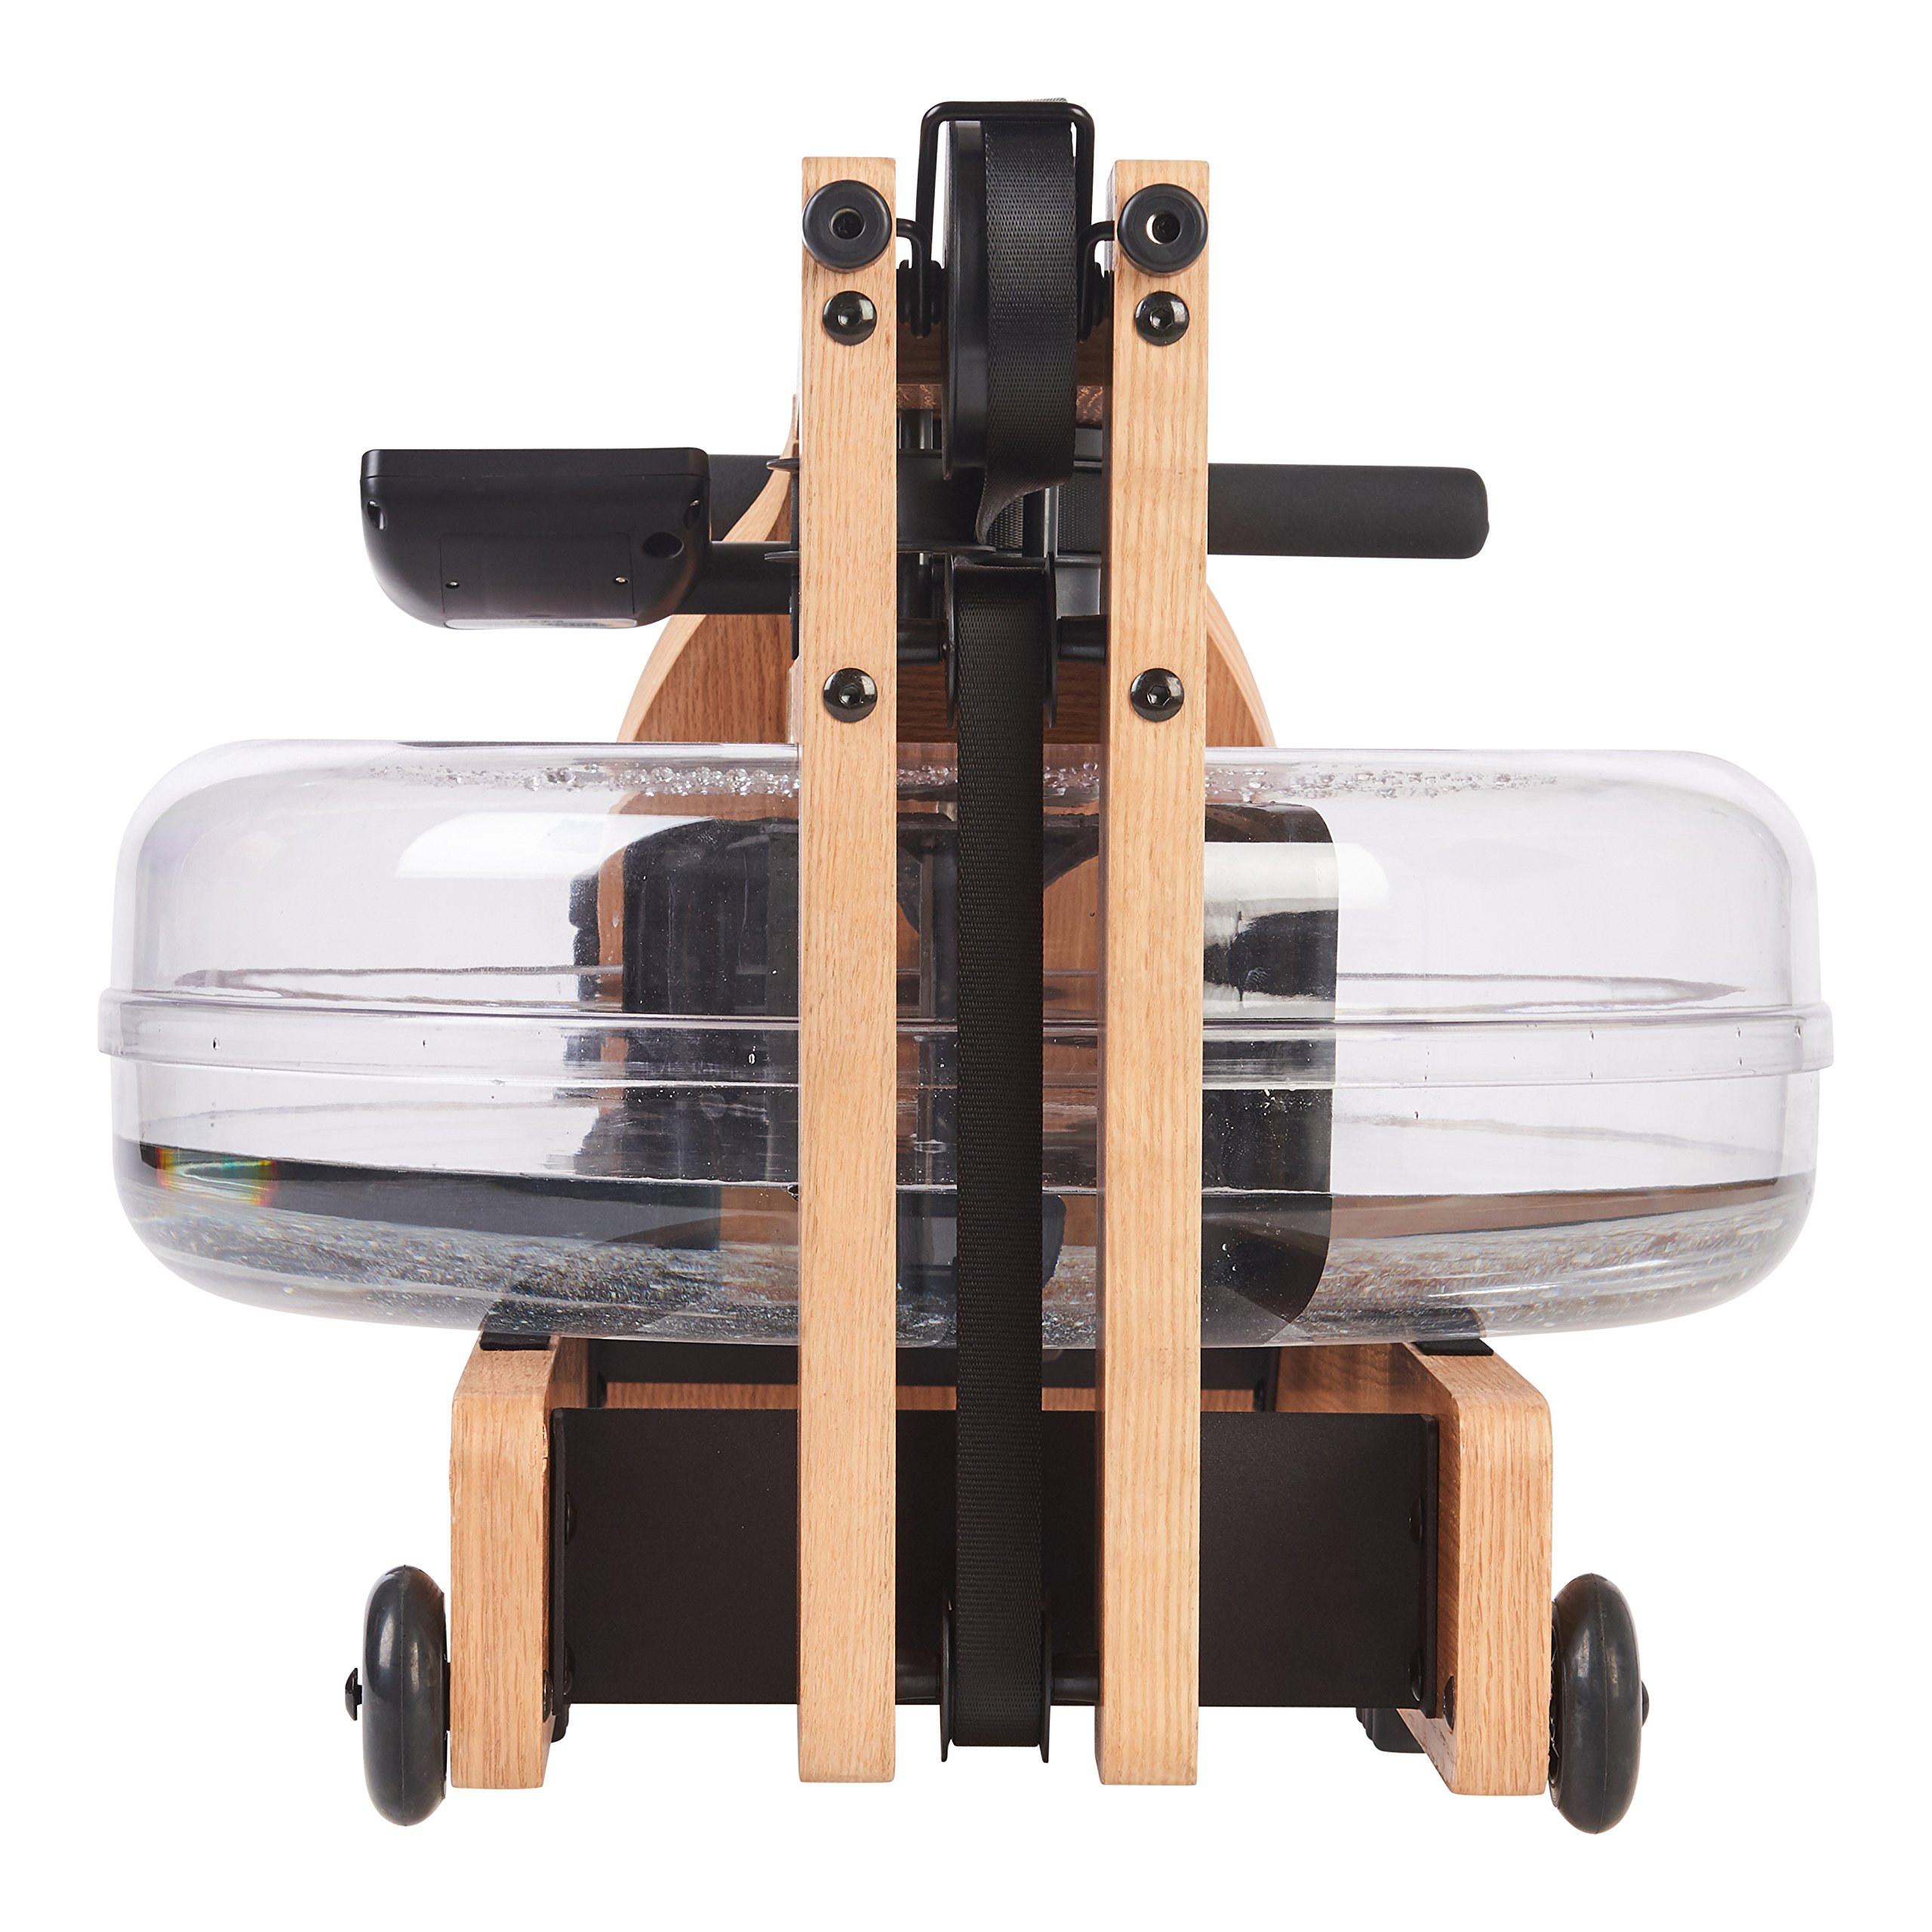 Incline Fit Wood Water Rowing Machine with Monitor by Incline Fit (Image #4)